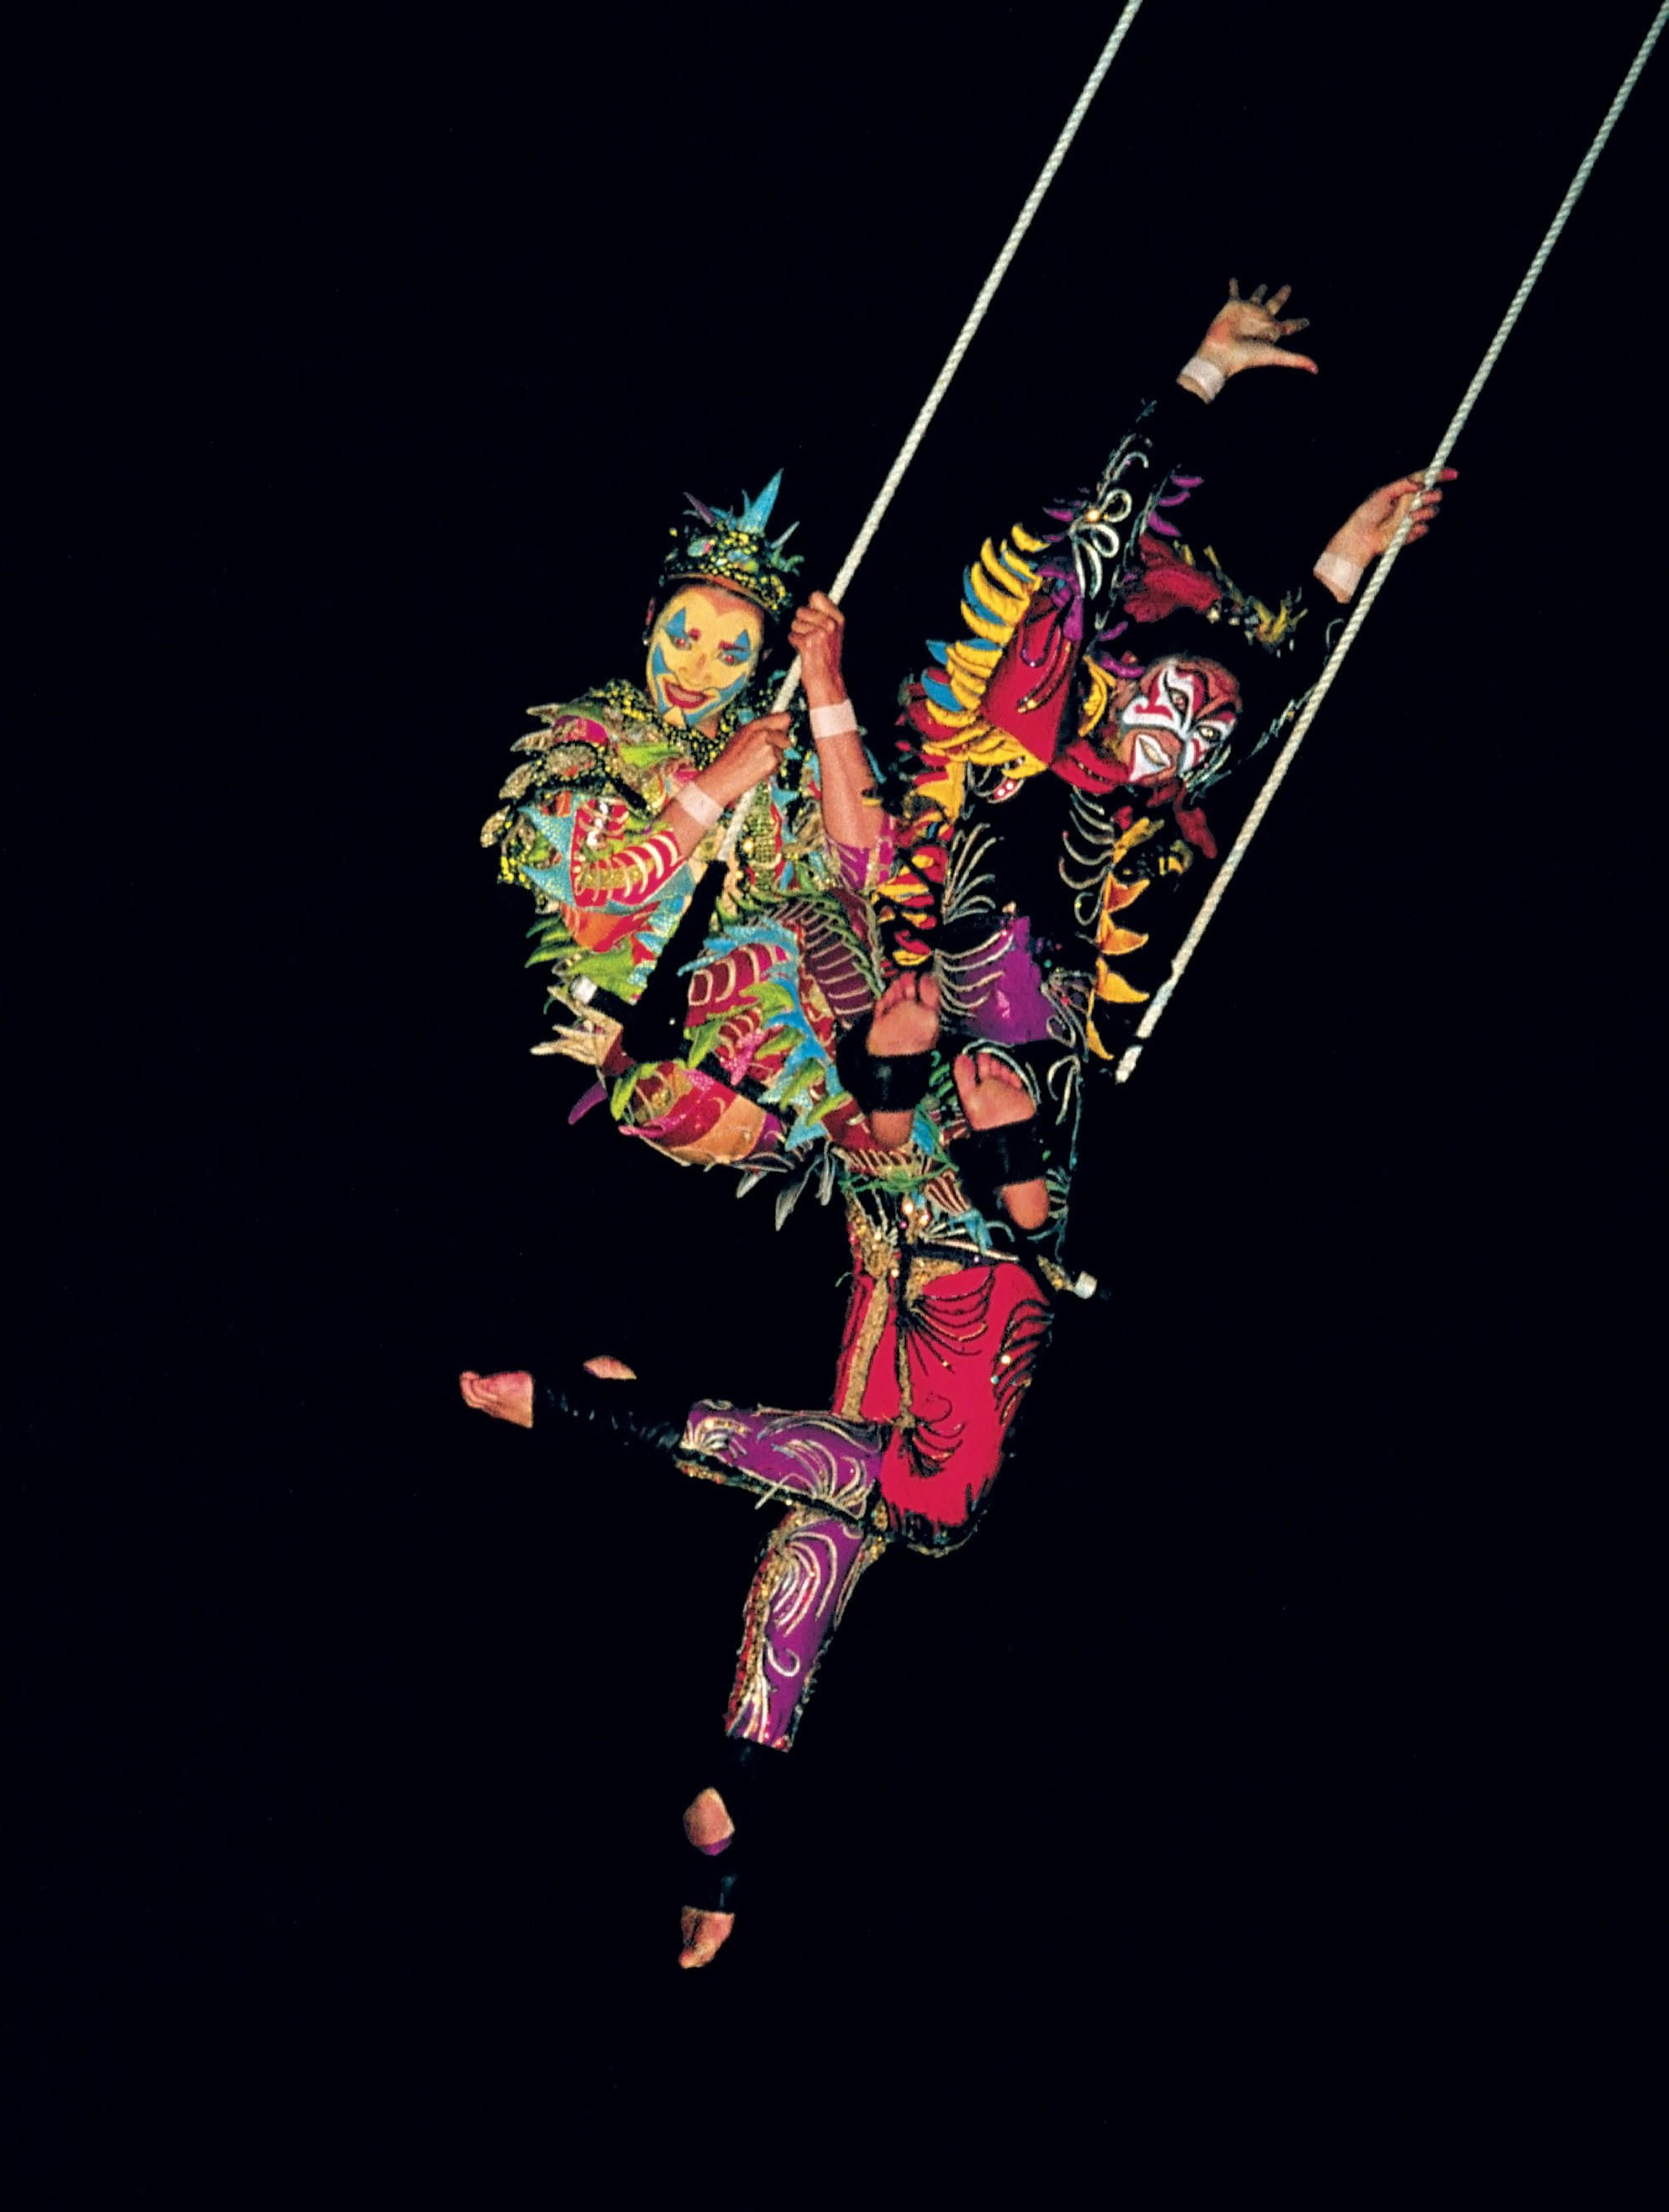 In the Air, the chameleon costume in action